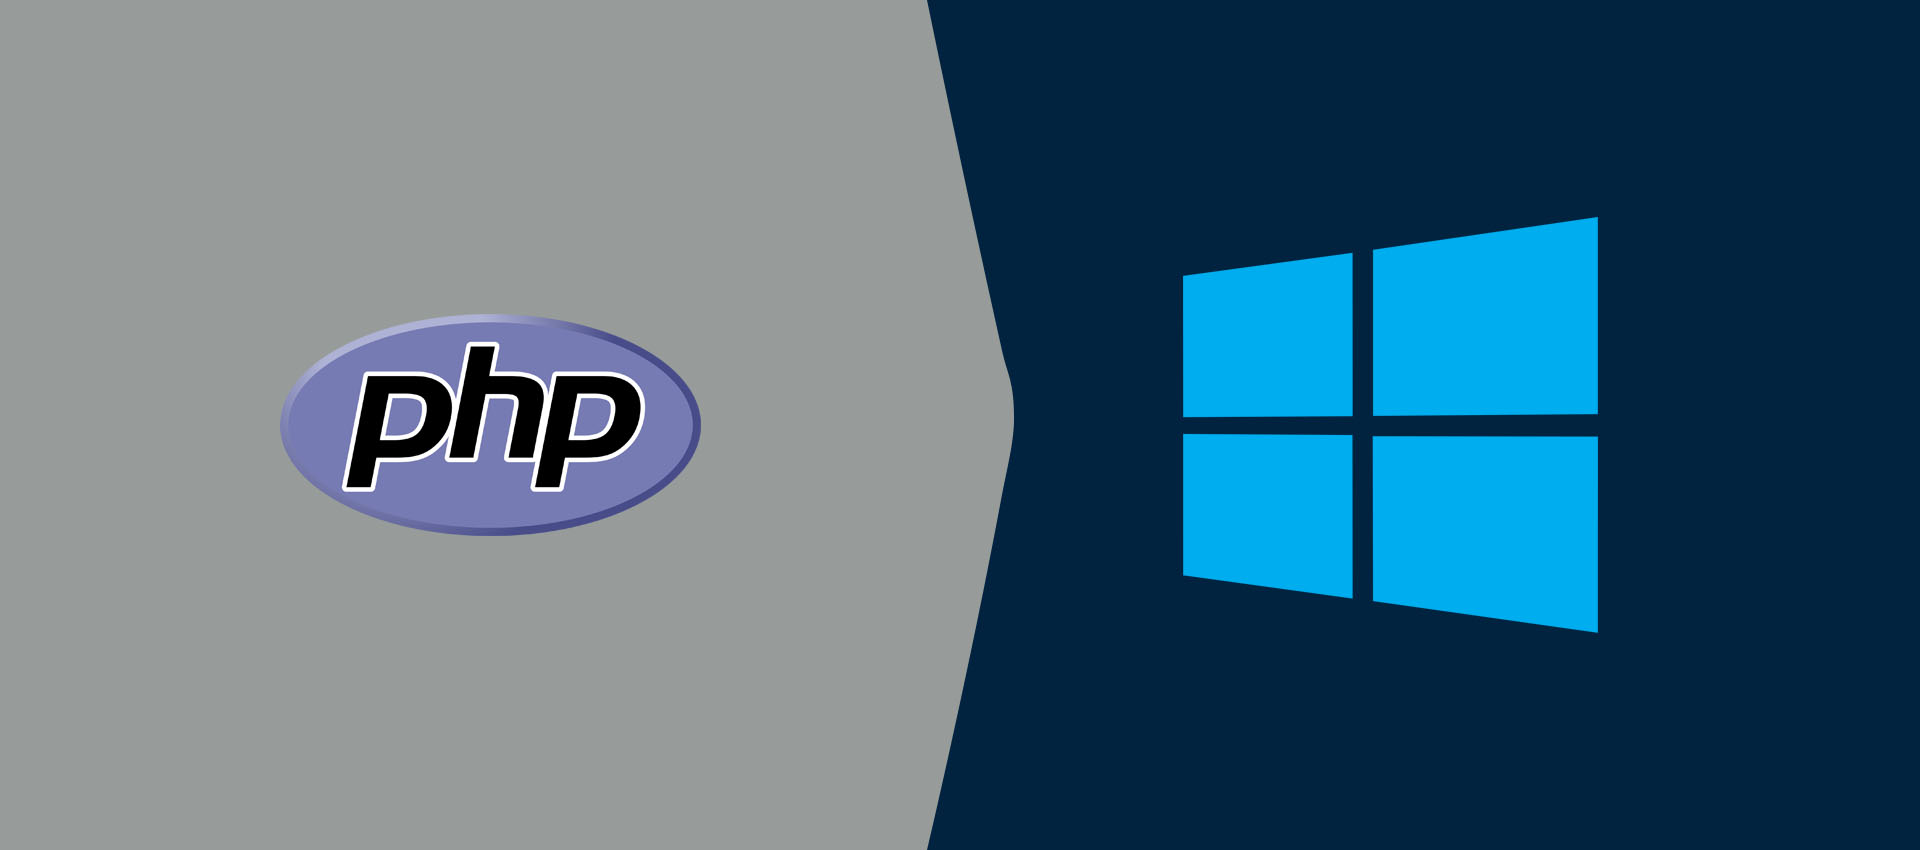 How To Install PHP On Windows